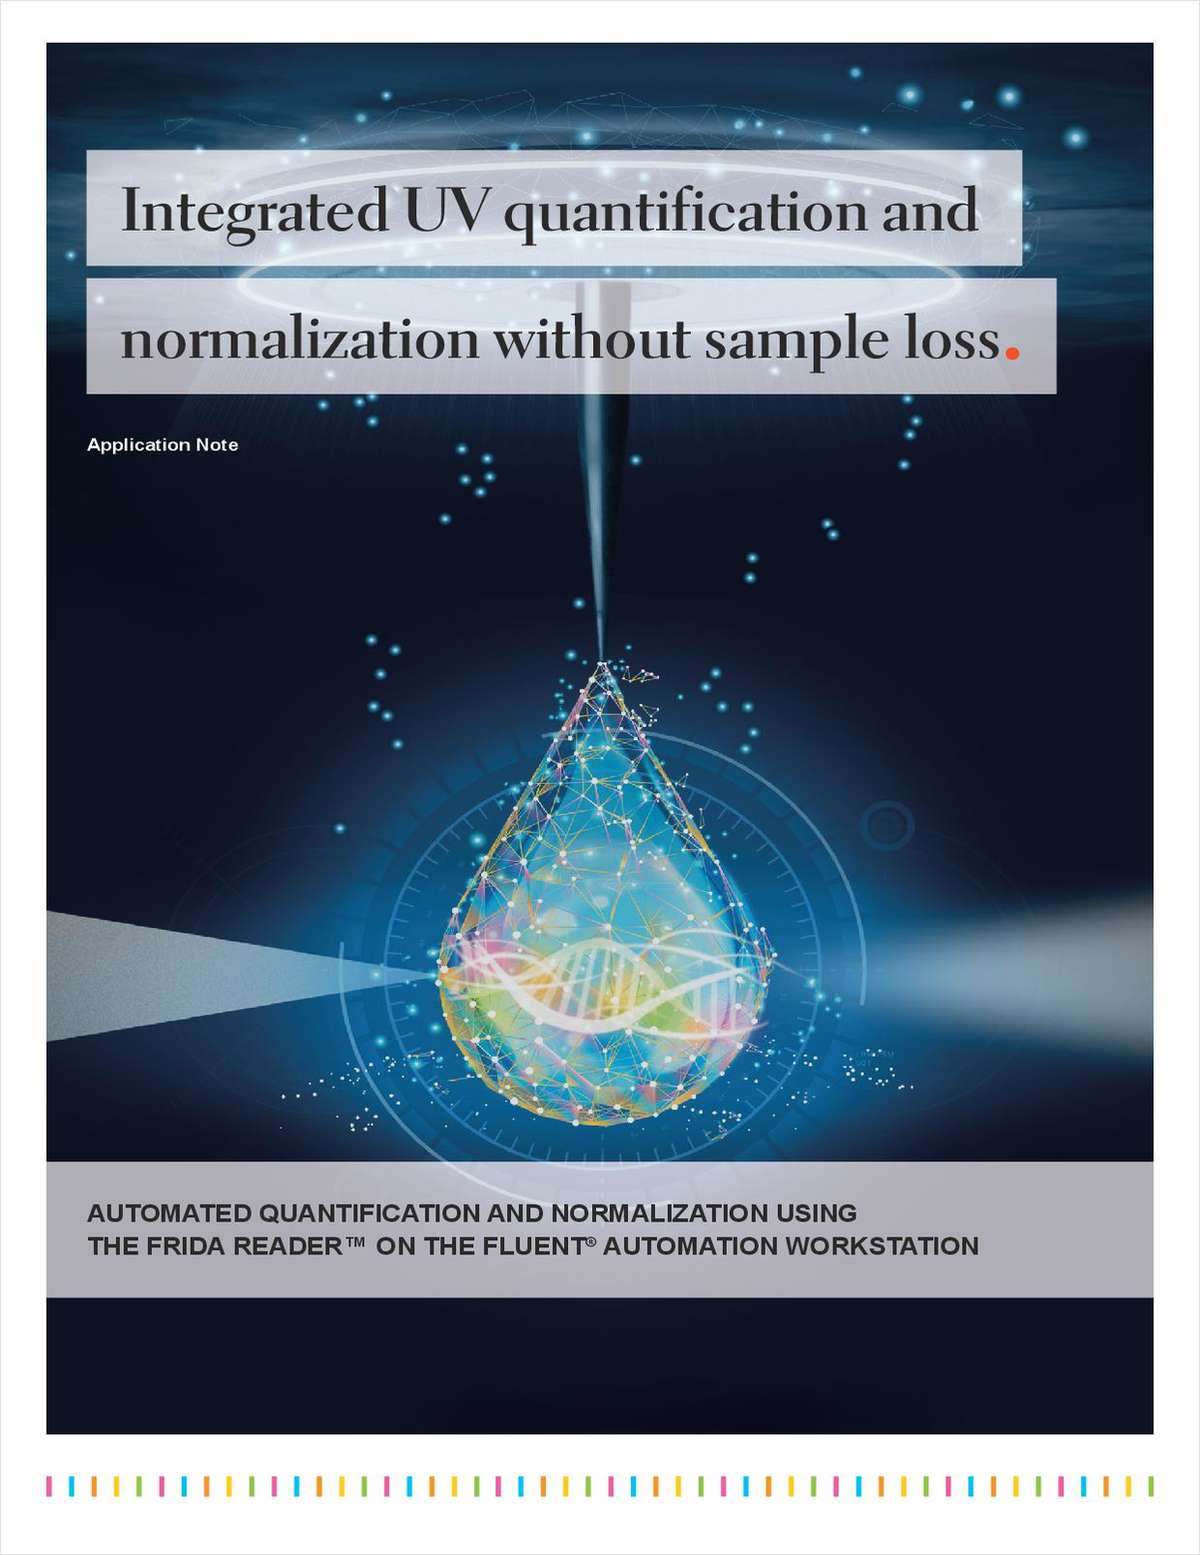 Integrated UV Quantification and Normalization Without Sample Loss